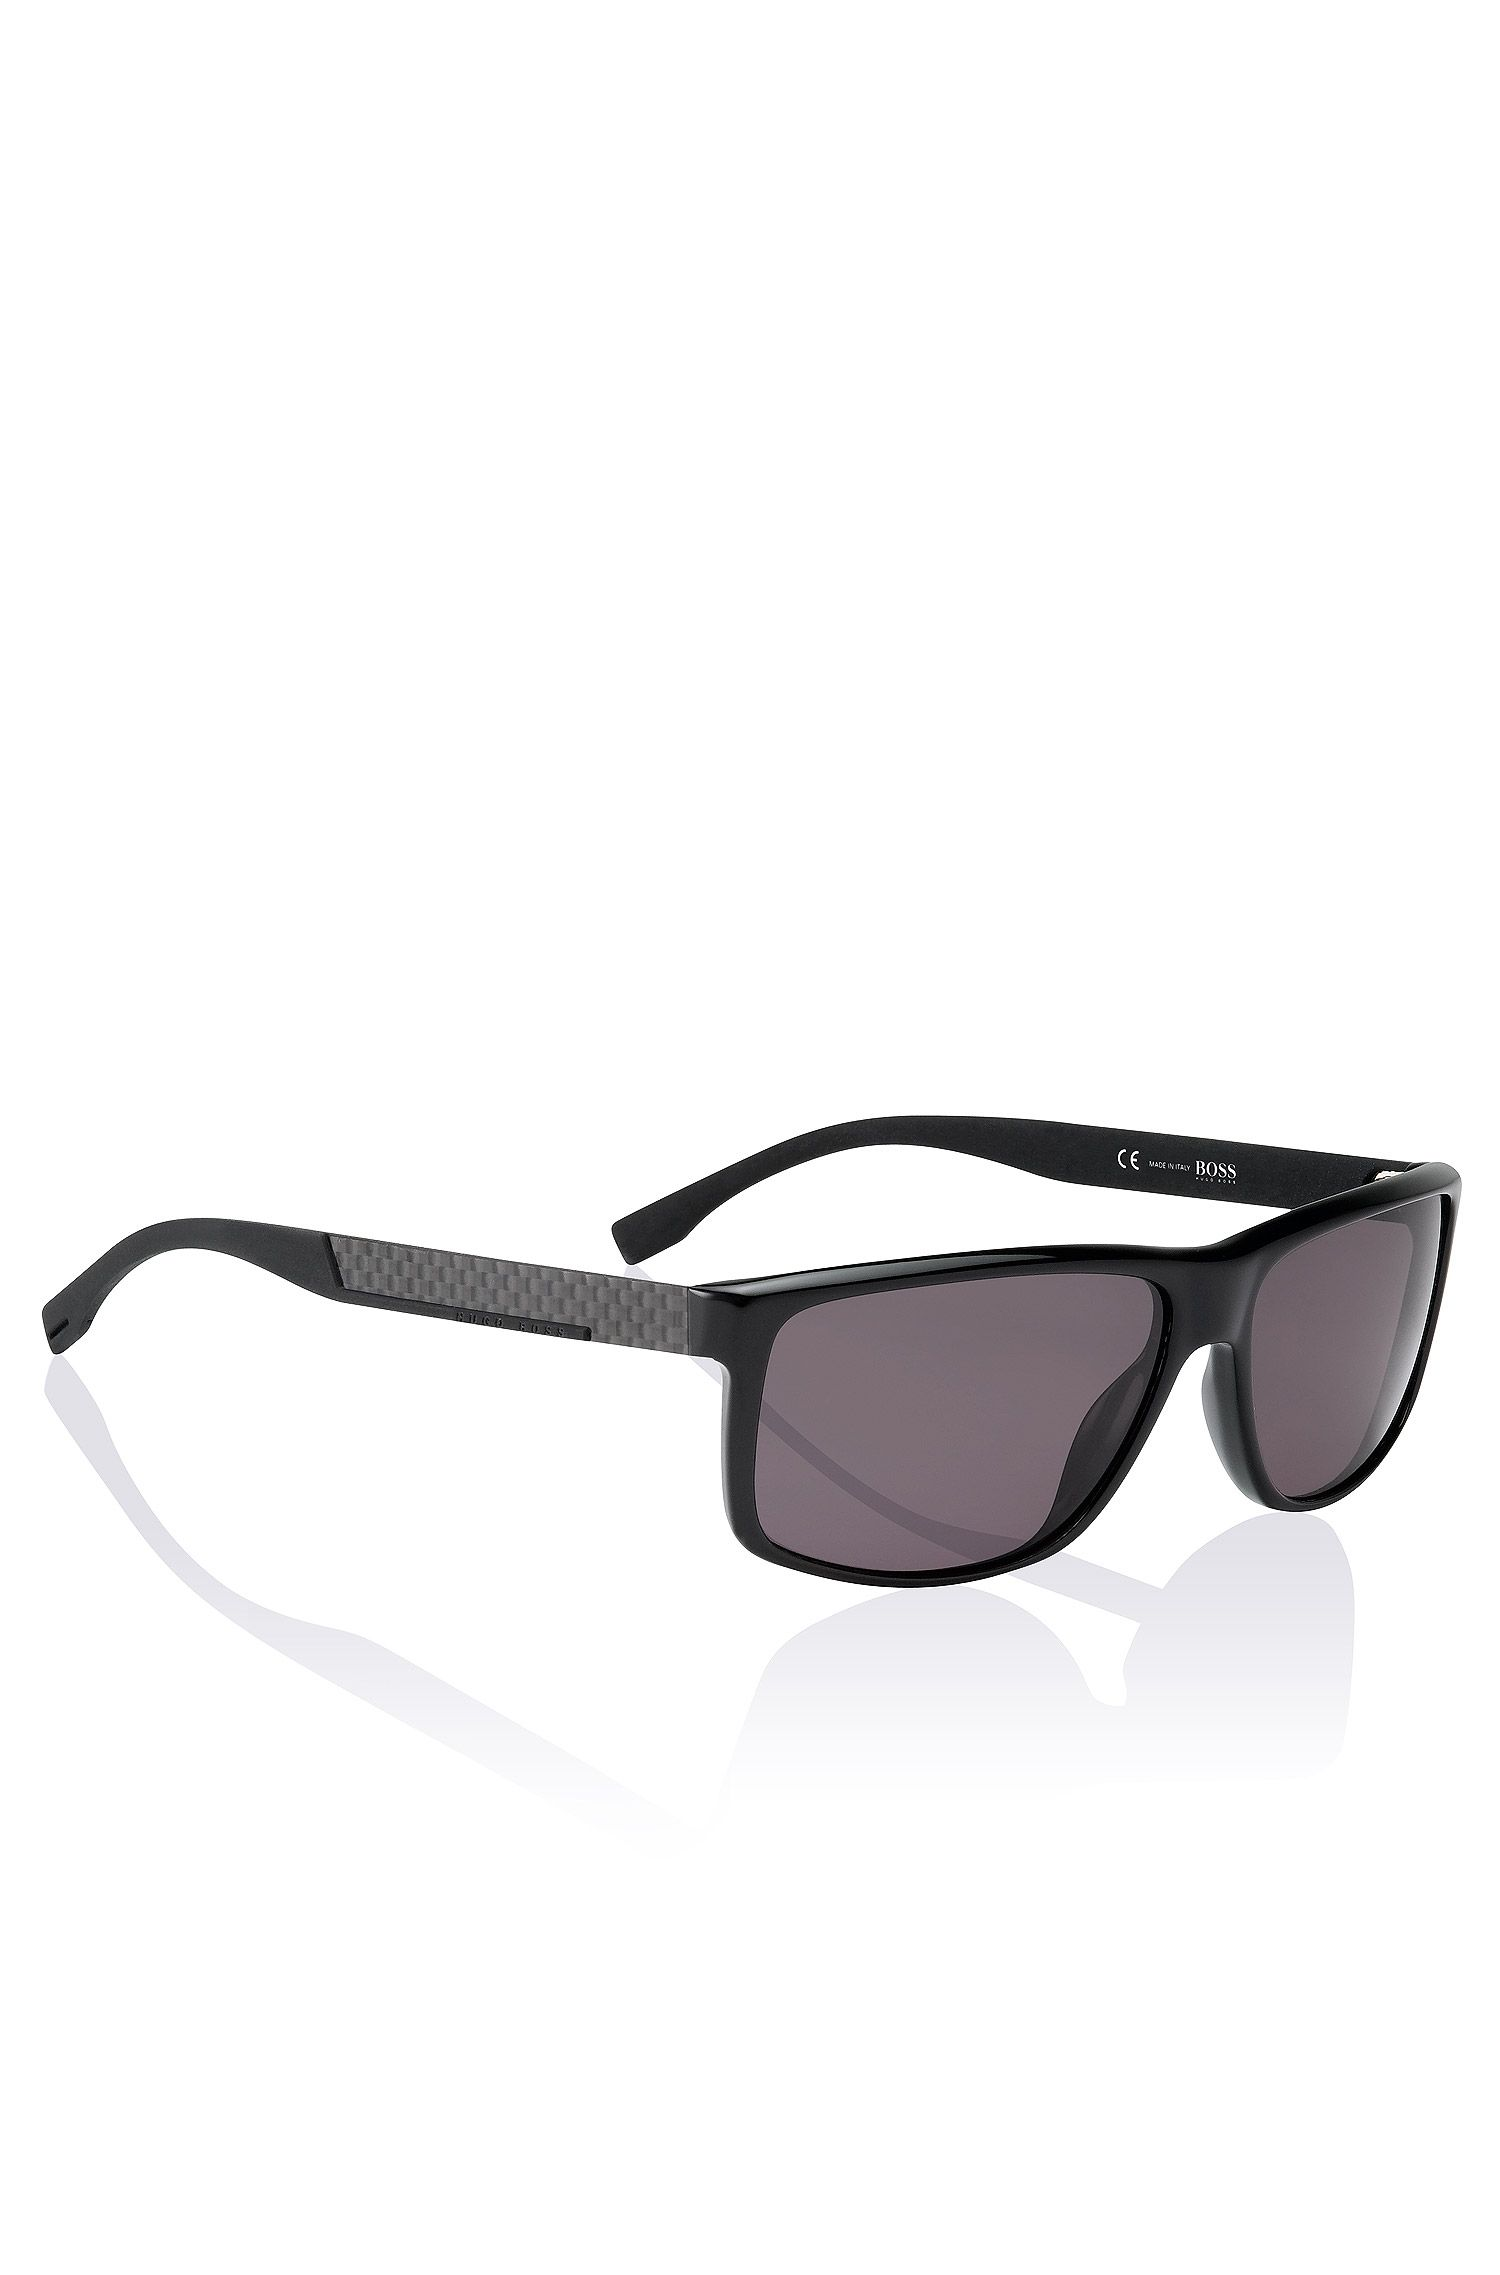 Sunglasses 'BOSS 637/S'